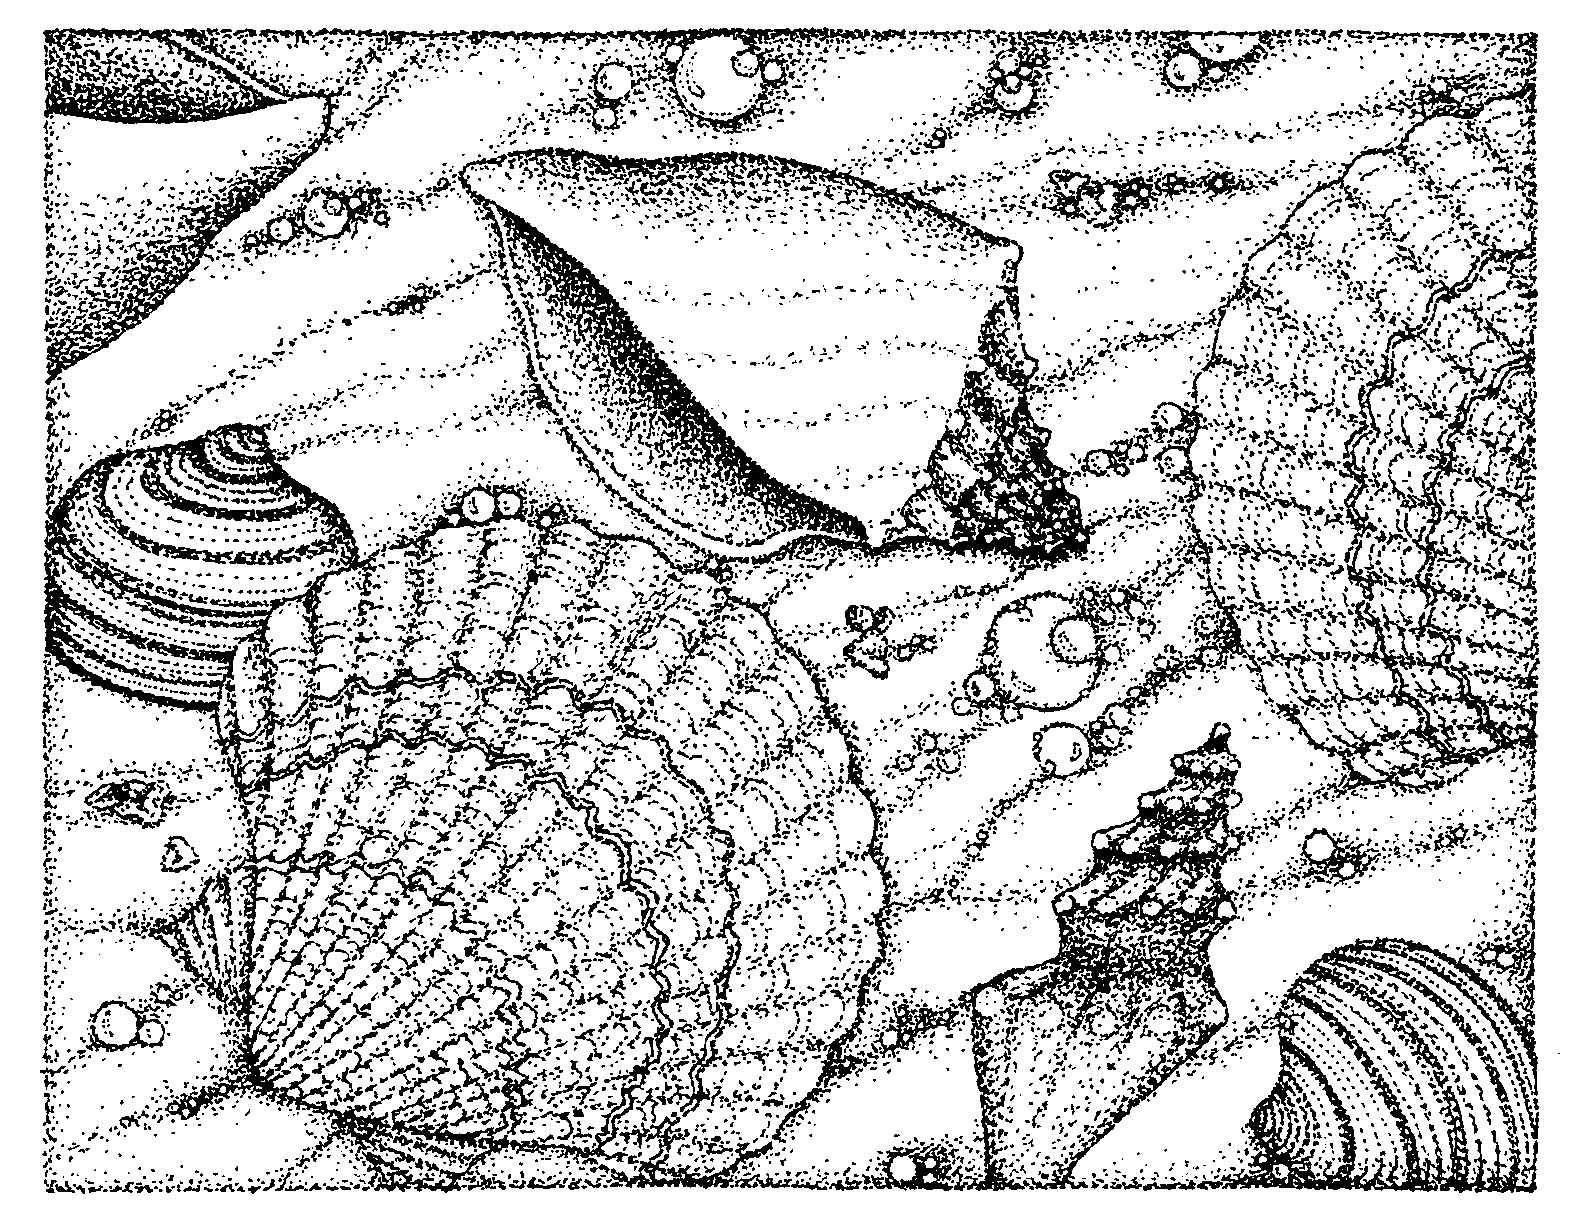 Seashell Coloring Pages (19 Pictures) - Colorine.net | 19310